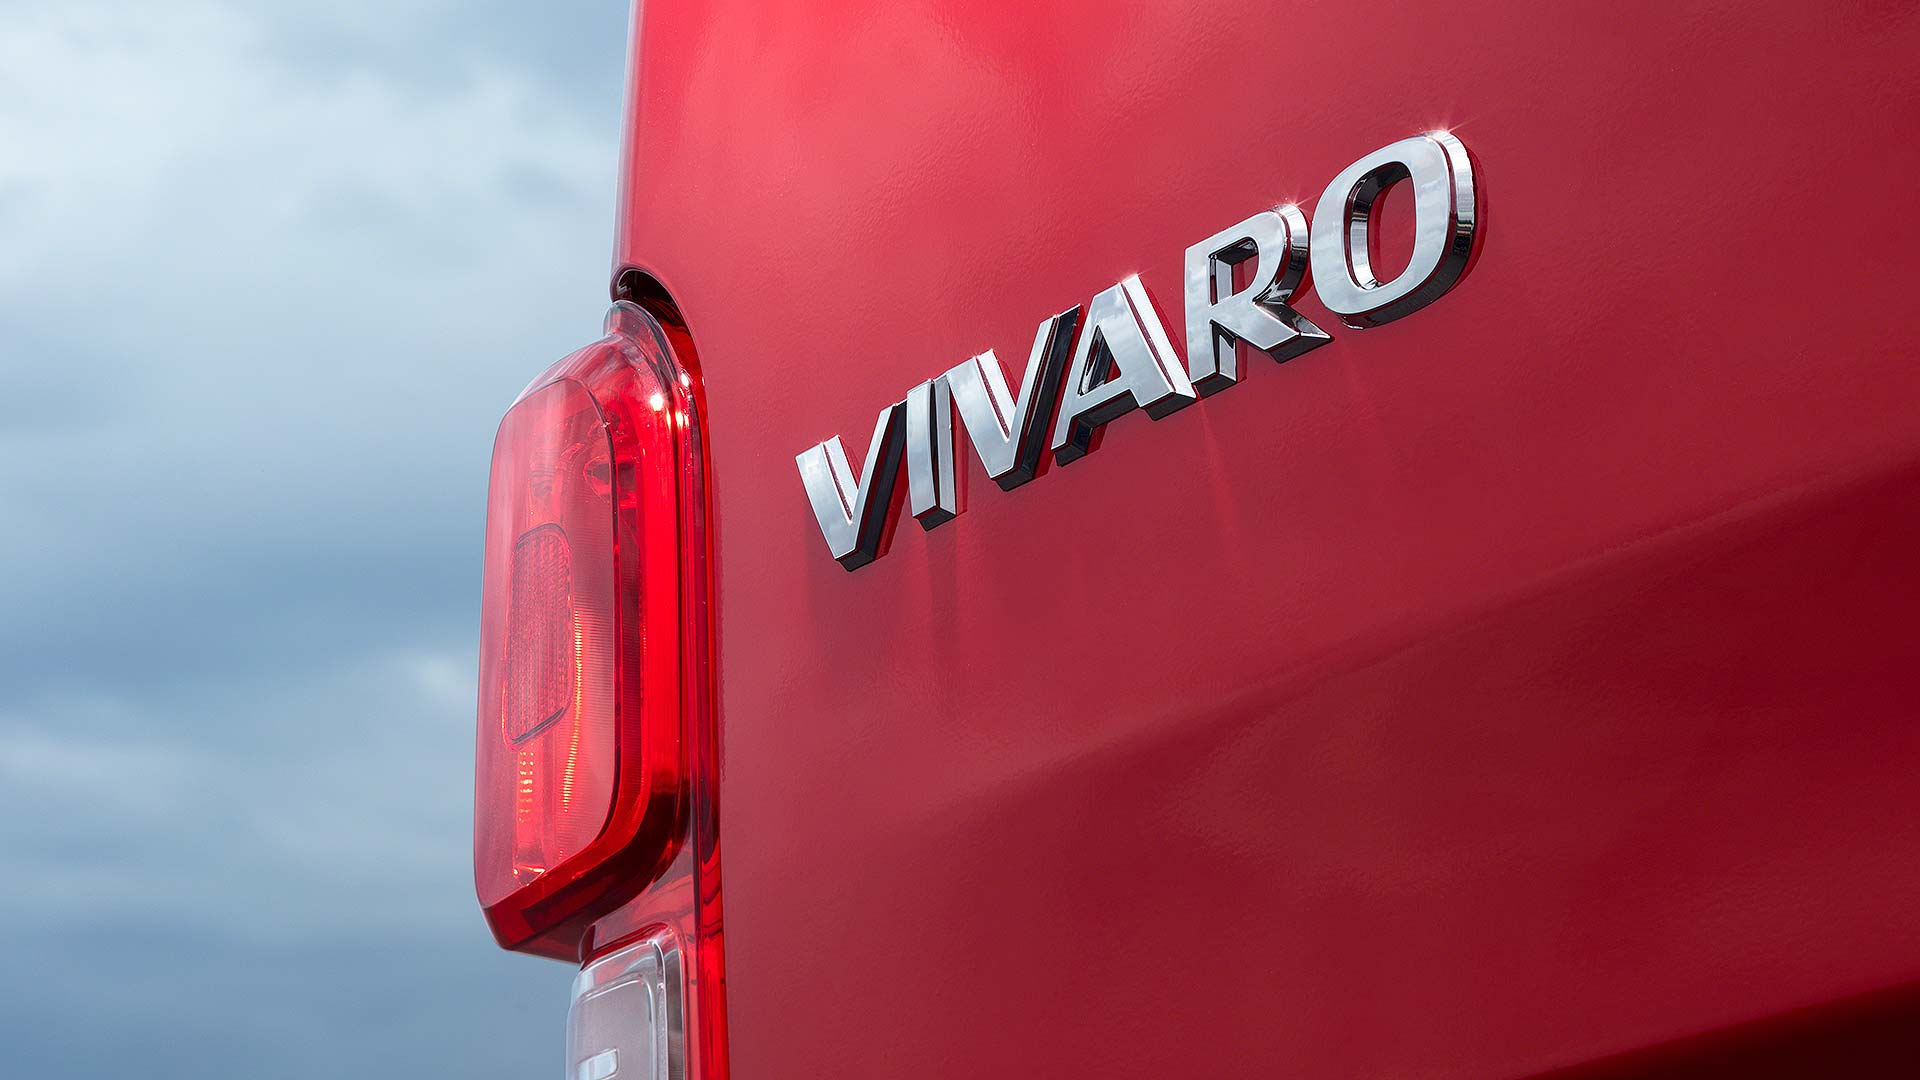 All-new 2019 Vauxhall Vivari